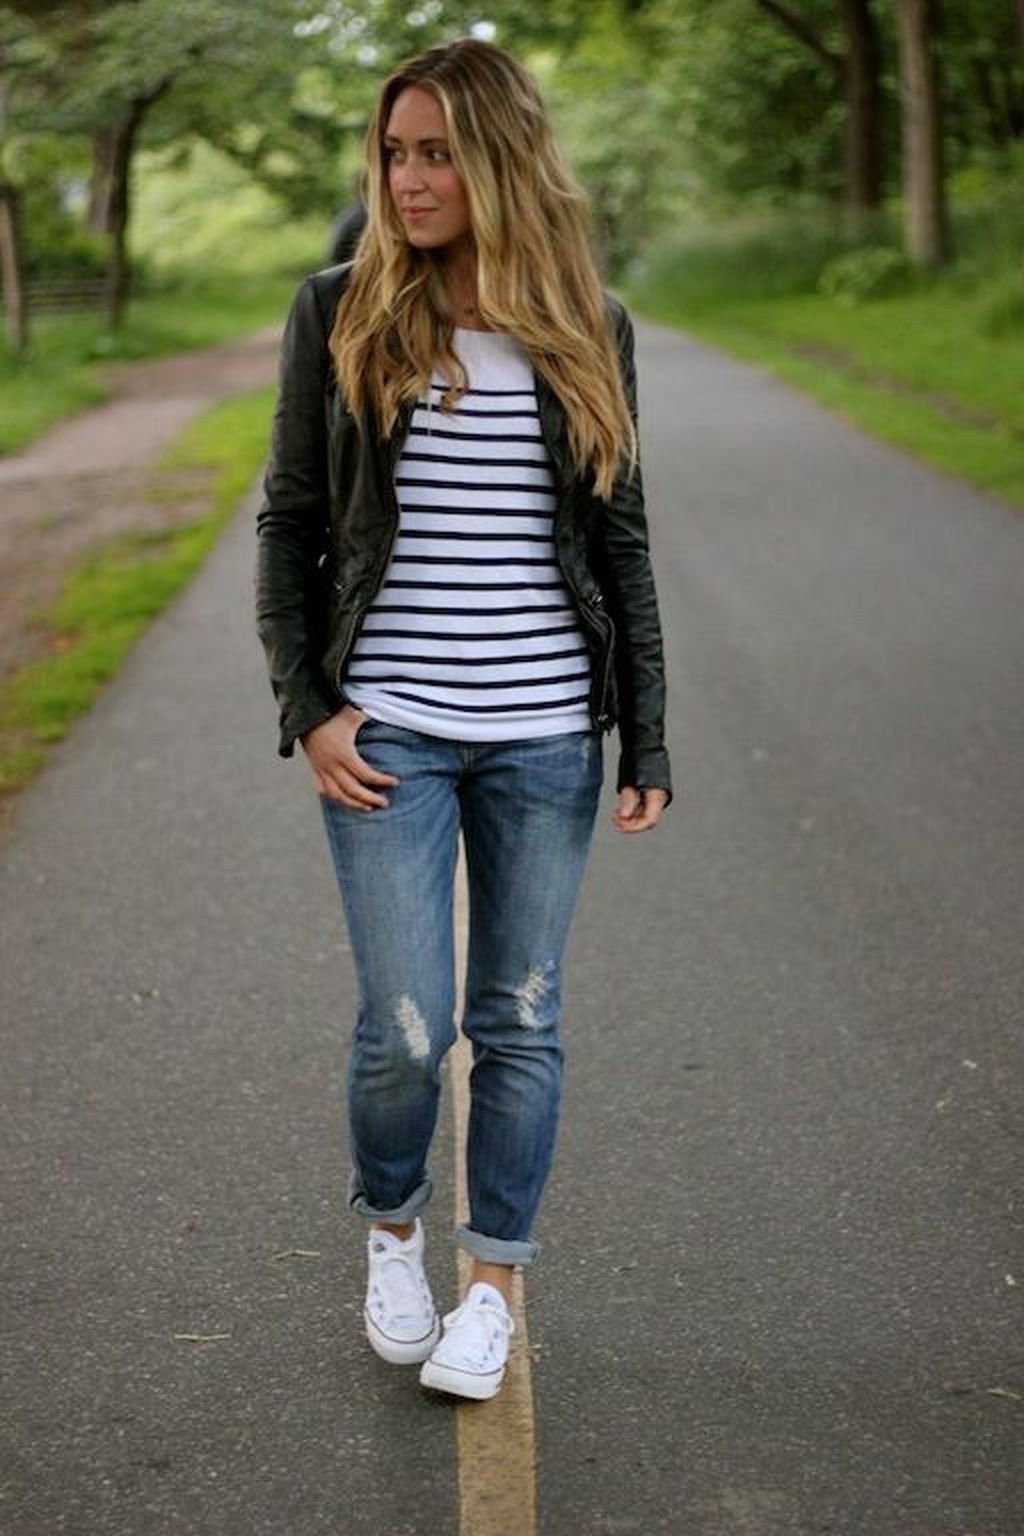 cf38305958 2013 Wearing TNA Shirt Jacket c o Muubaa Necklace c o Jennifer Zeuner Anine  Bing Jeans Converse Sneakers